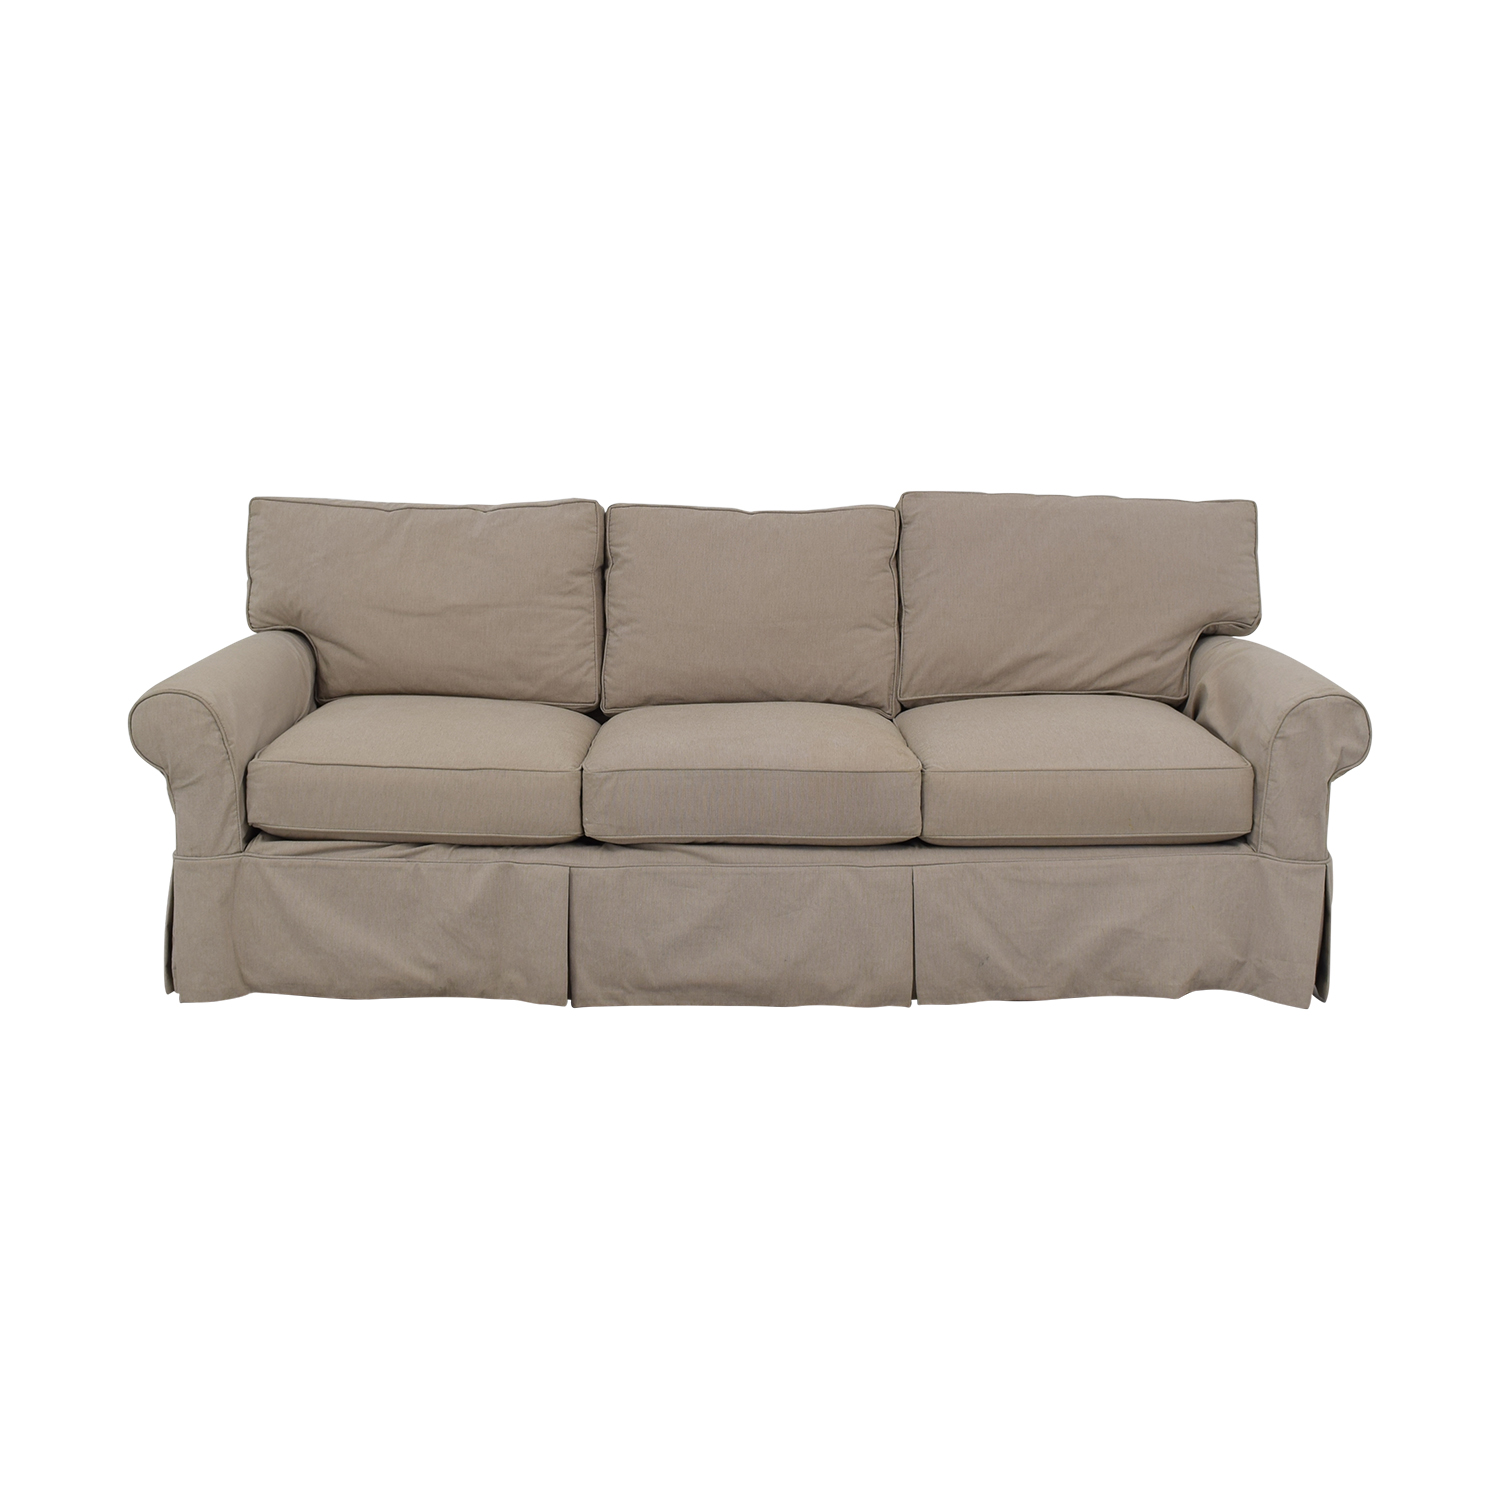 Arhaus Arhaus Three Cushion Roll Arm Sofa